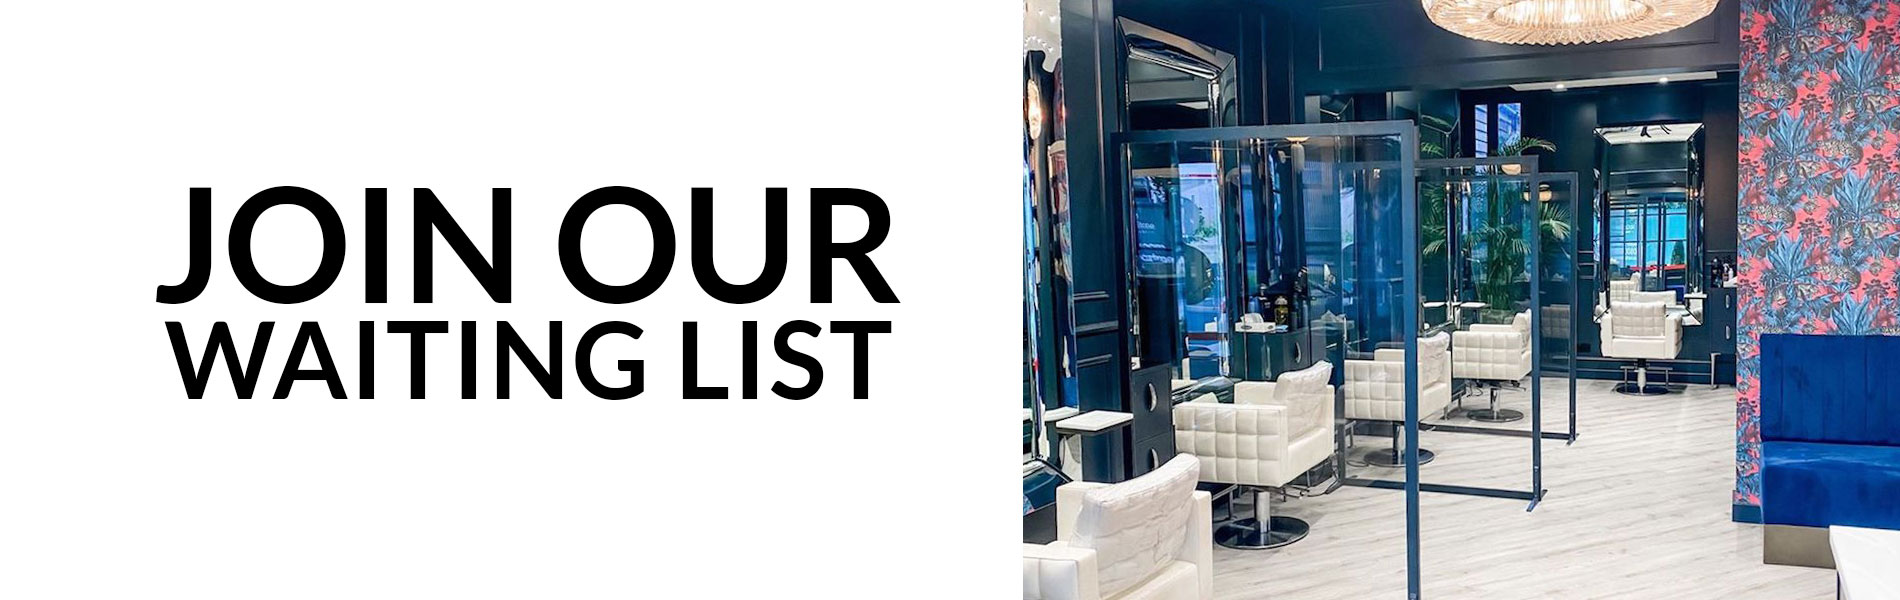 Join Our Waiting List banner